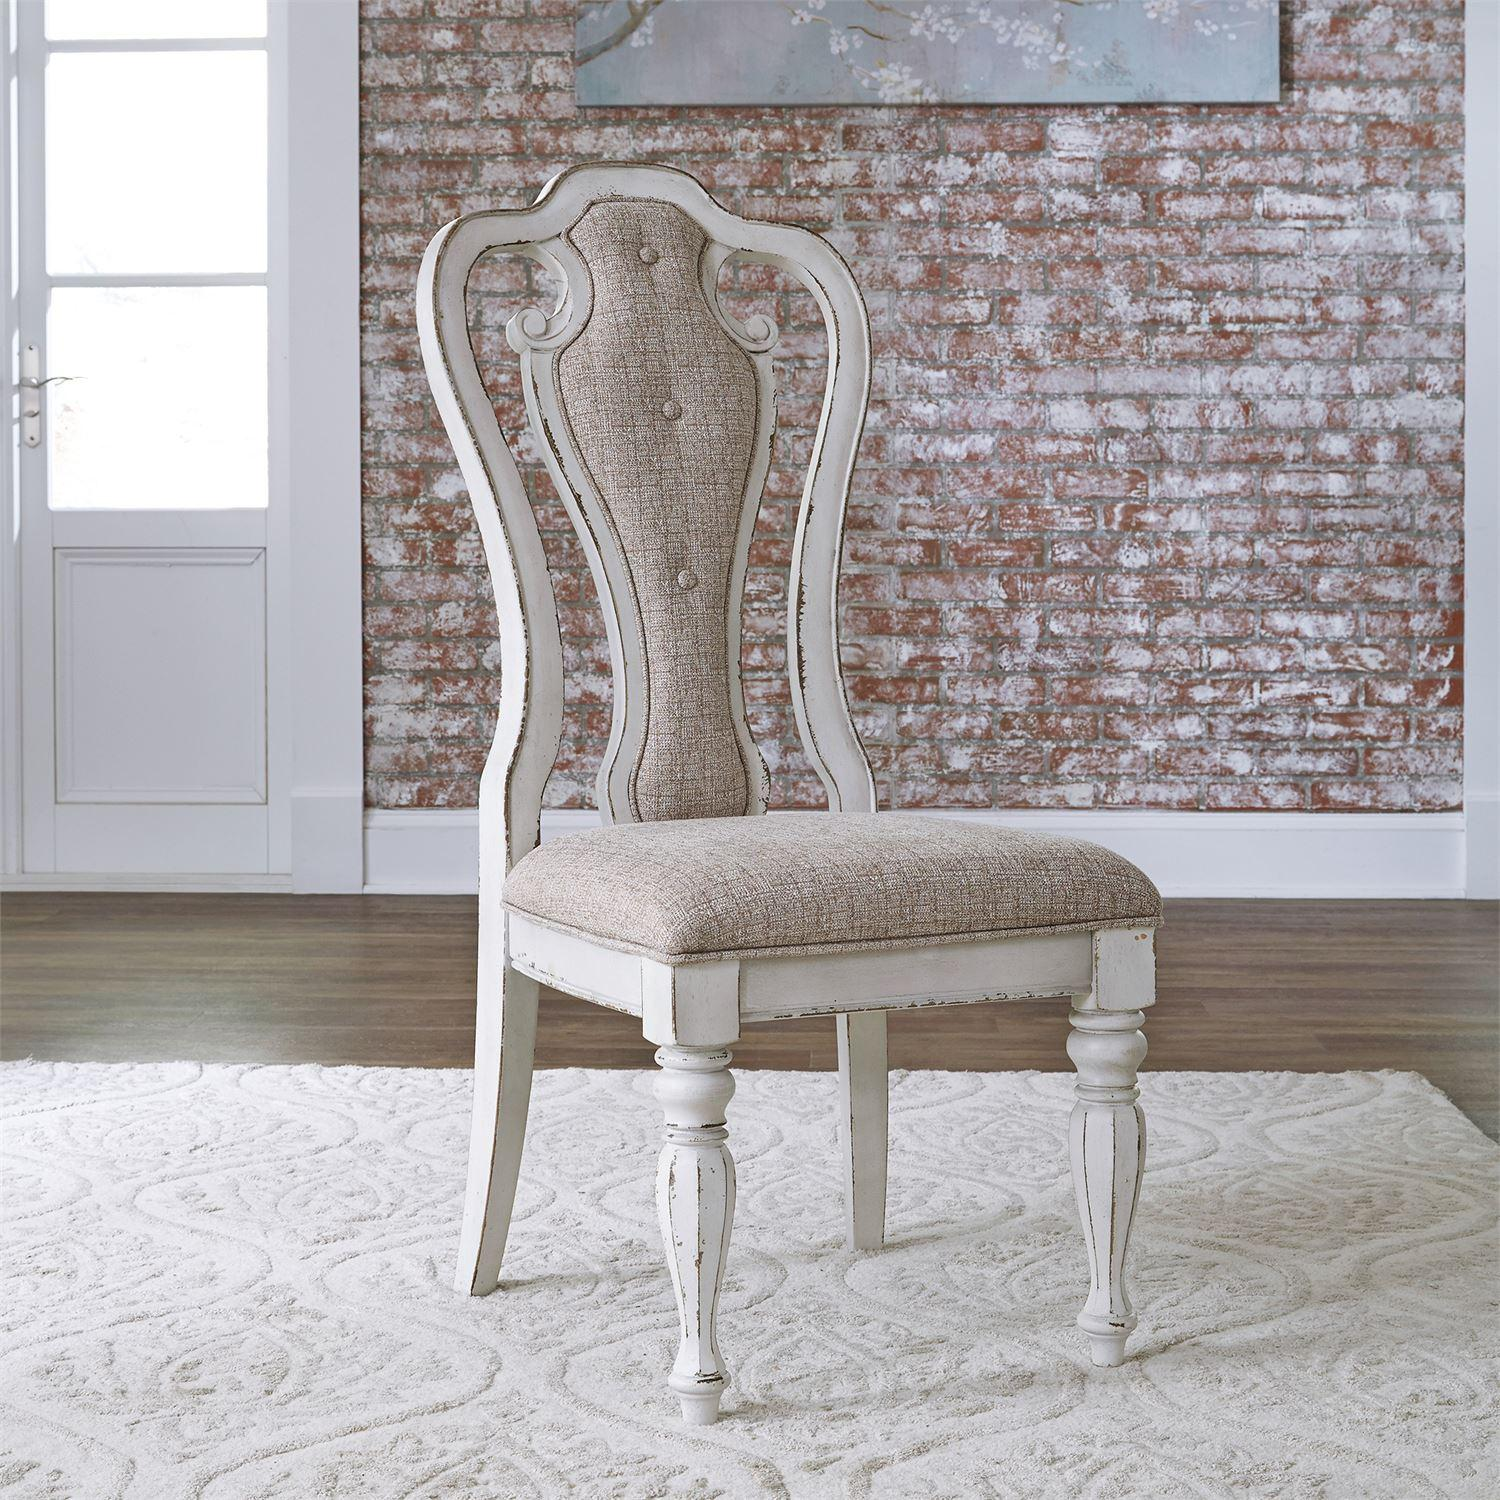 Magnolia Manor Upholstered Side Chair